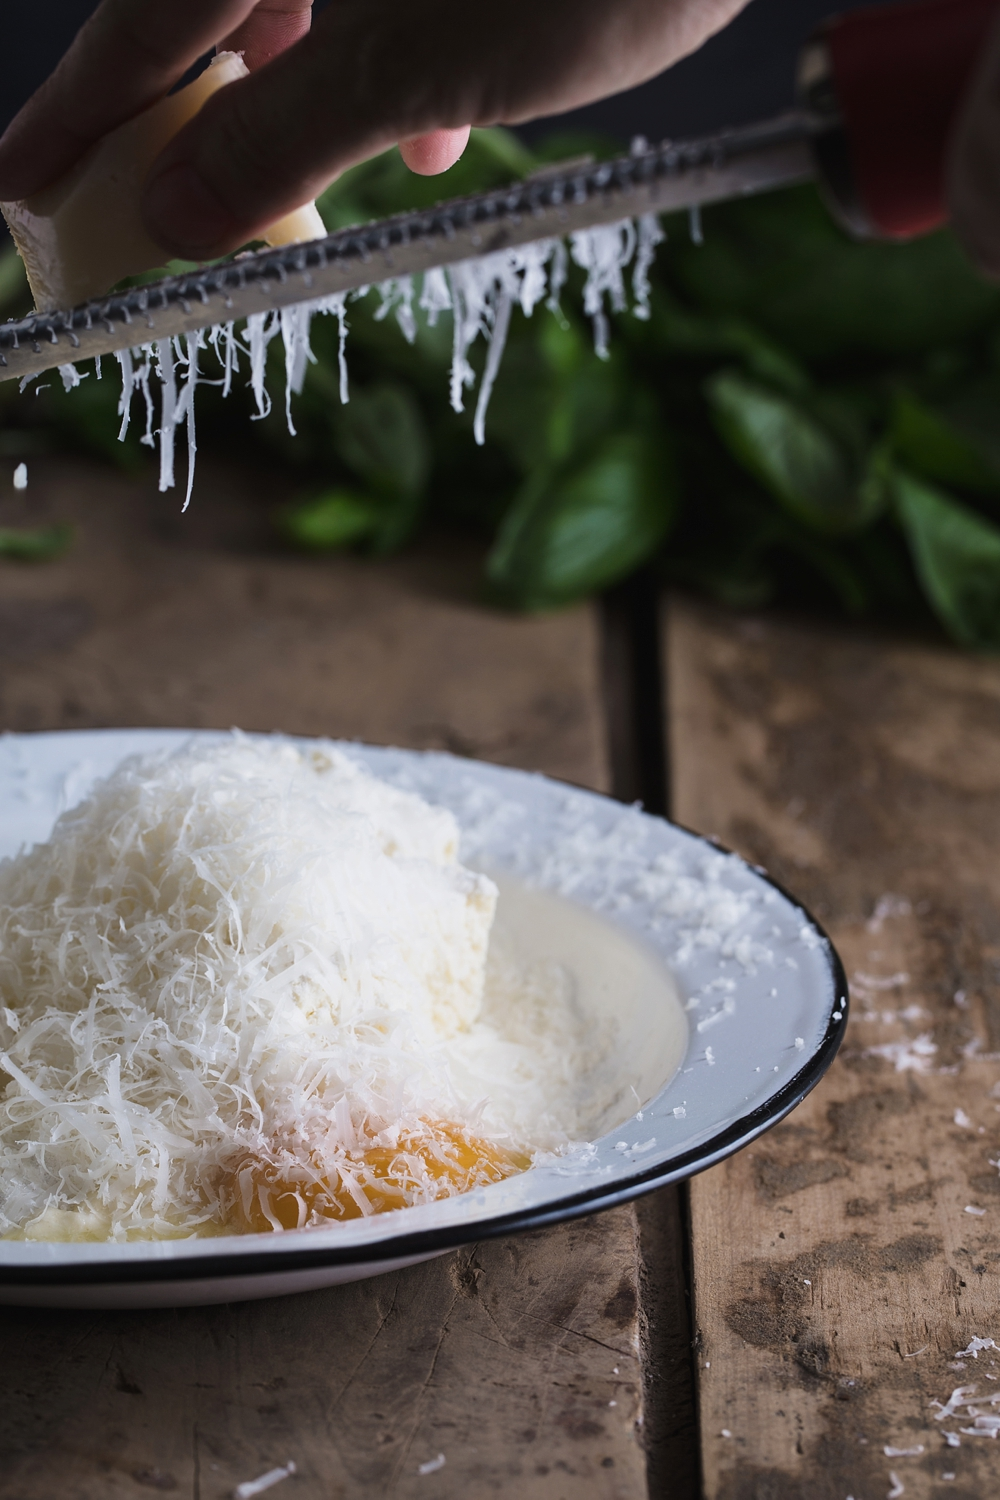 Ricotta-Gnocchi-home-made-food-photography_0183.jpg